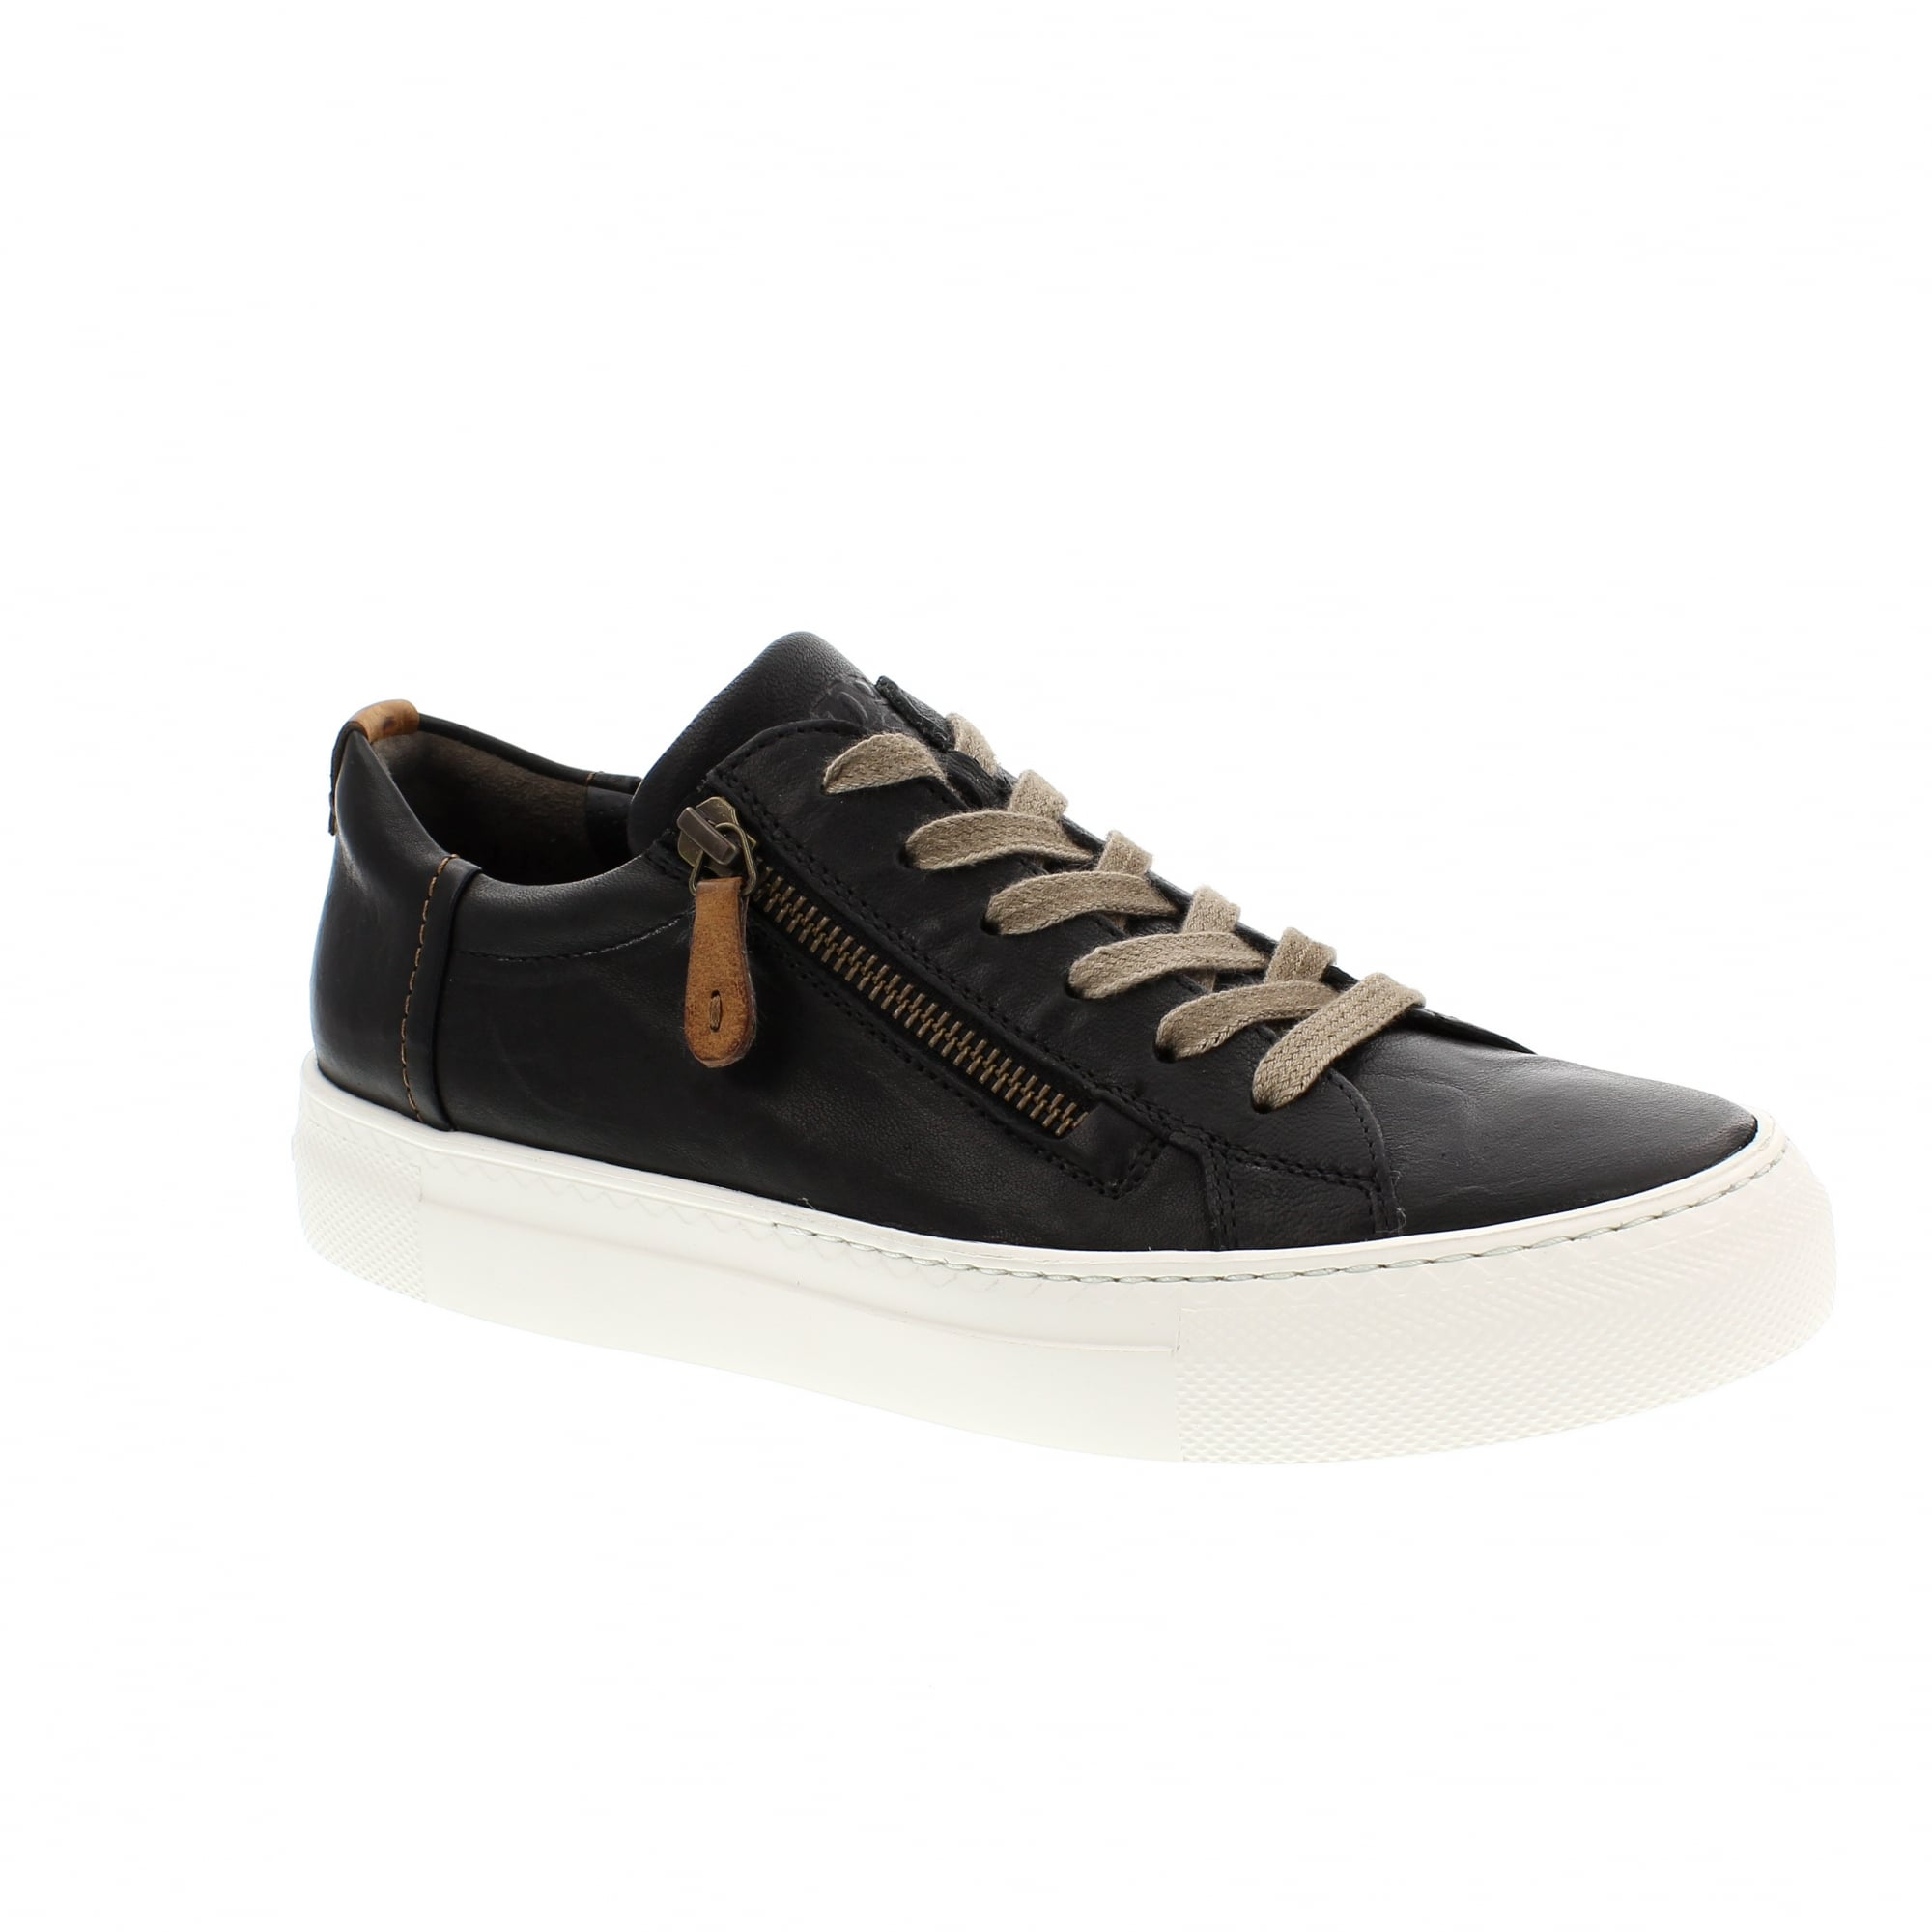 big discount factory price online store Paul Green 4512-081 Black/Tan Womens Trainers | Rogerson Shoes